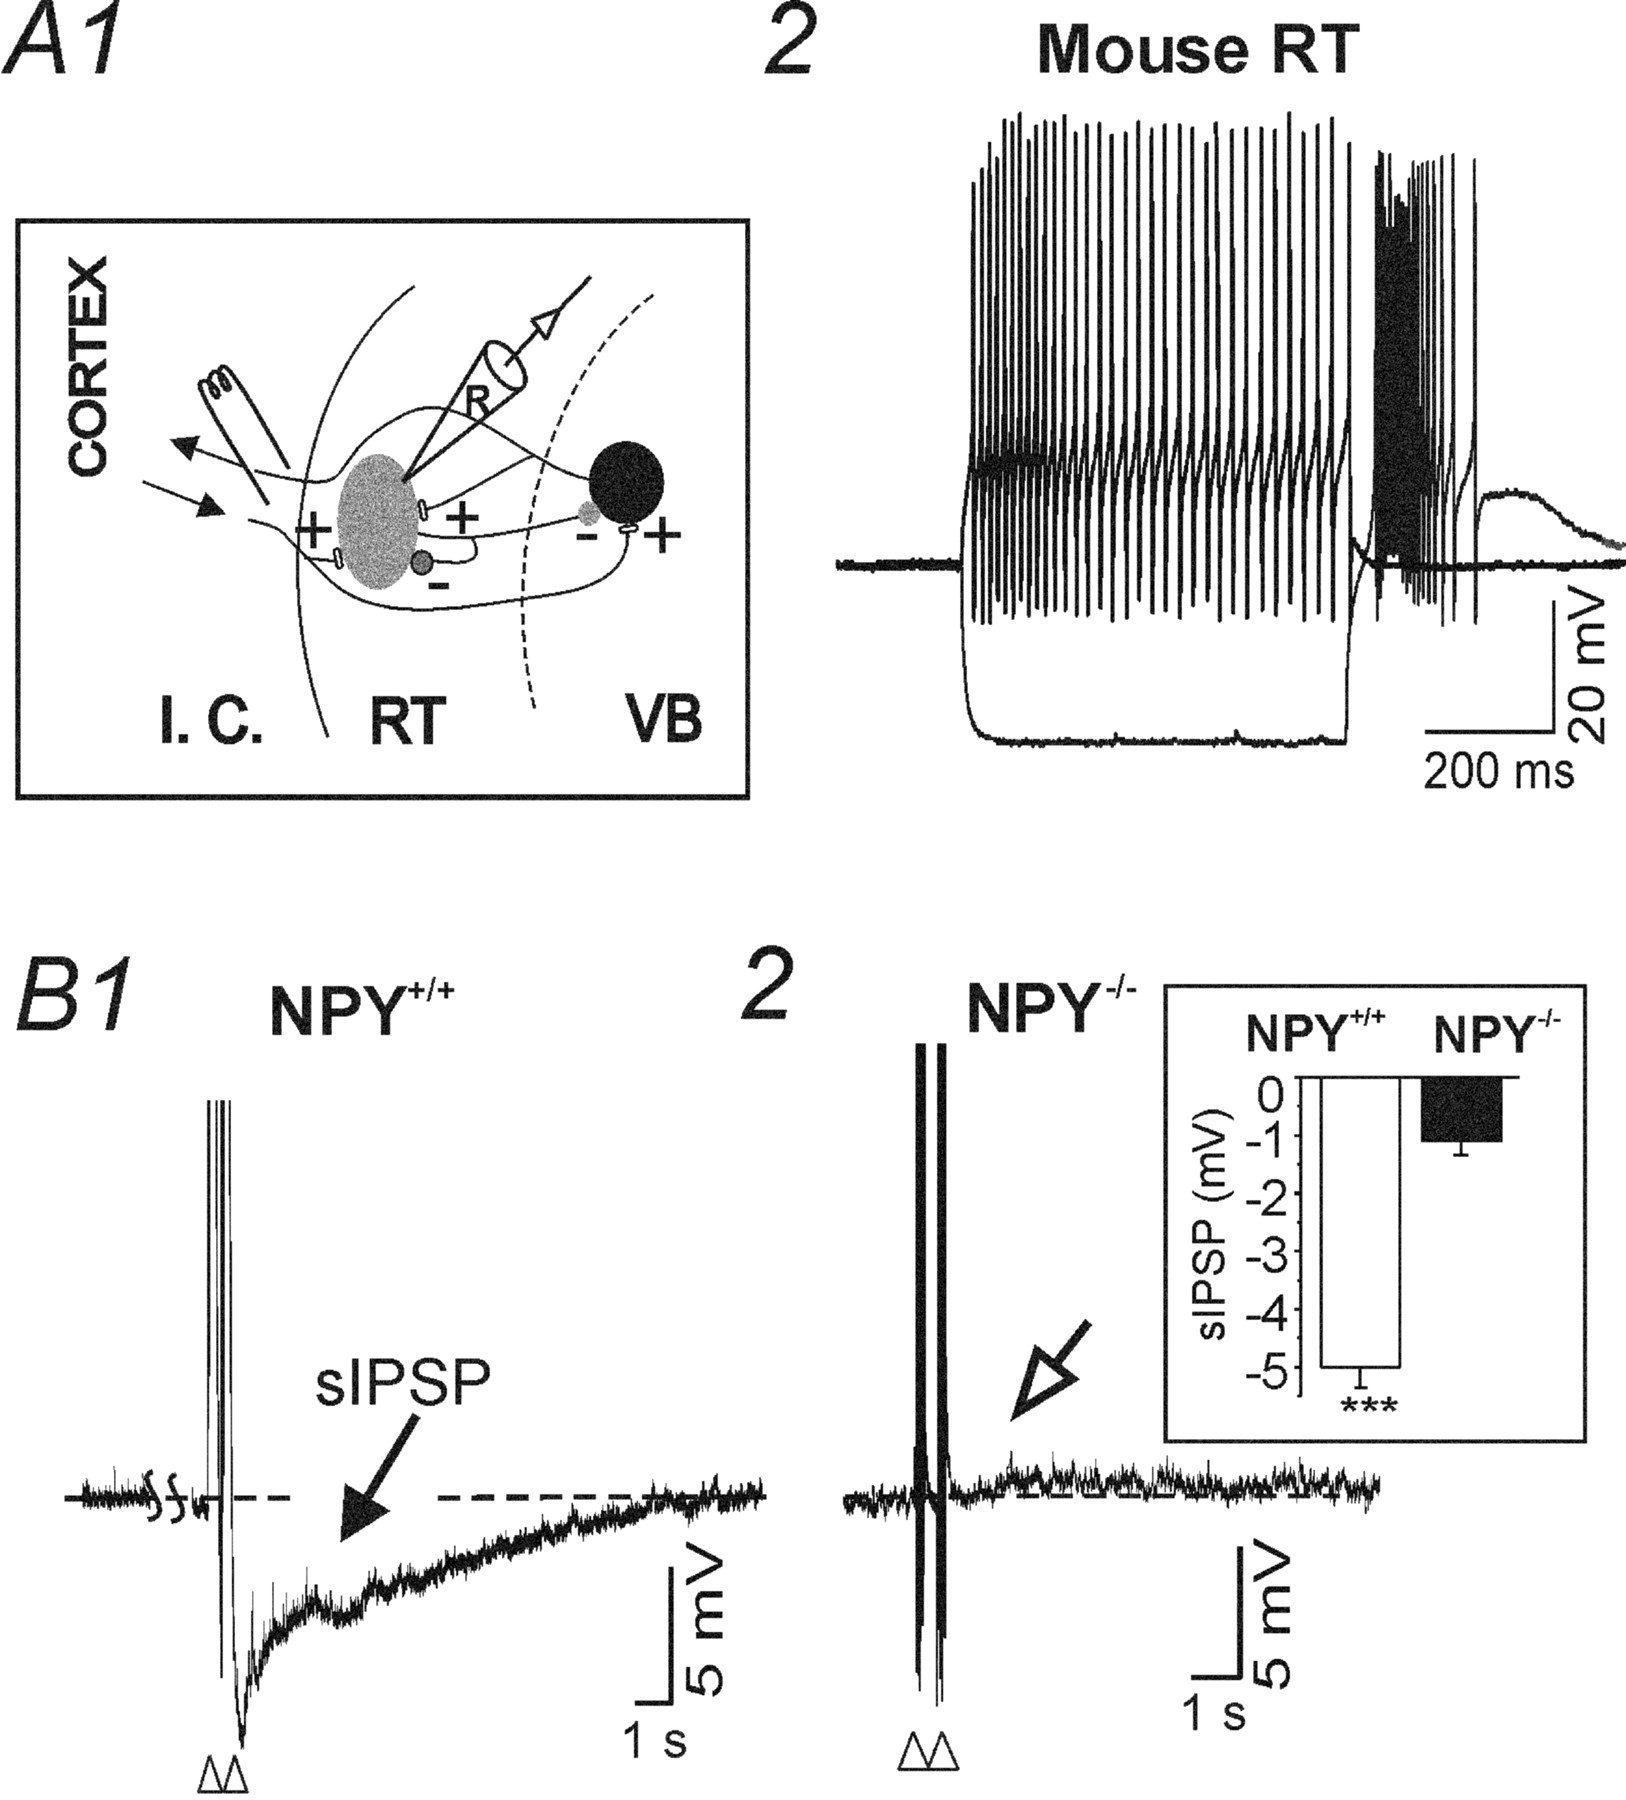 Target Specific Neuropeptide Y Ergic Synaptic Inhibition And Its Circuit 363 36 Hour Watchdog Timer Circuits Designed By David A Download Figure